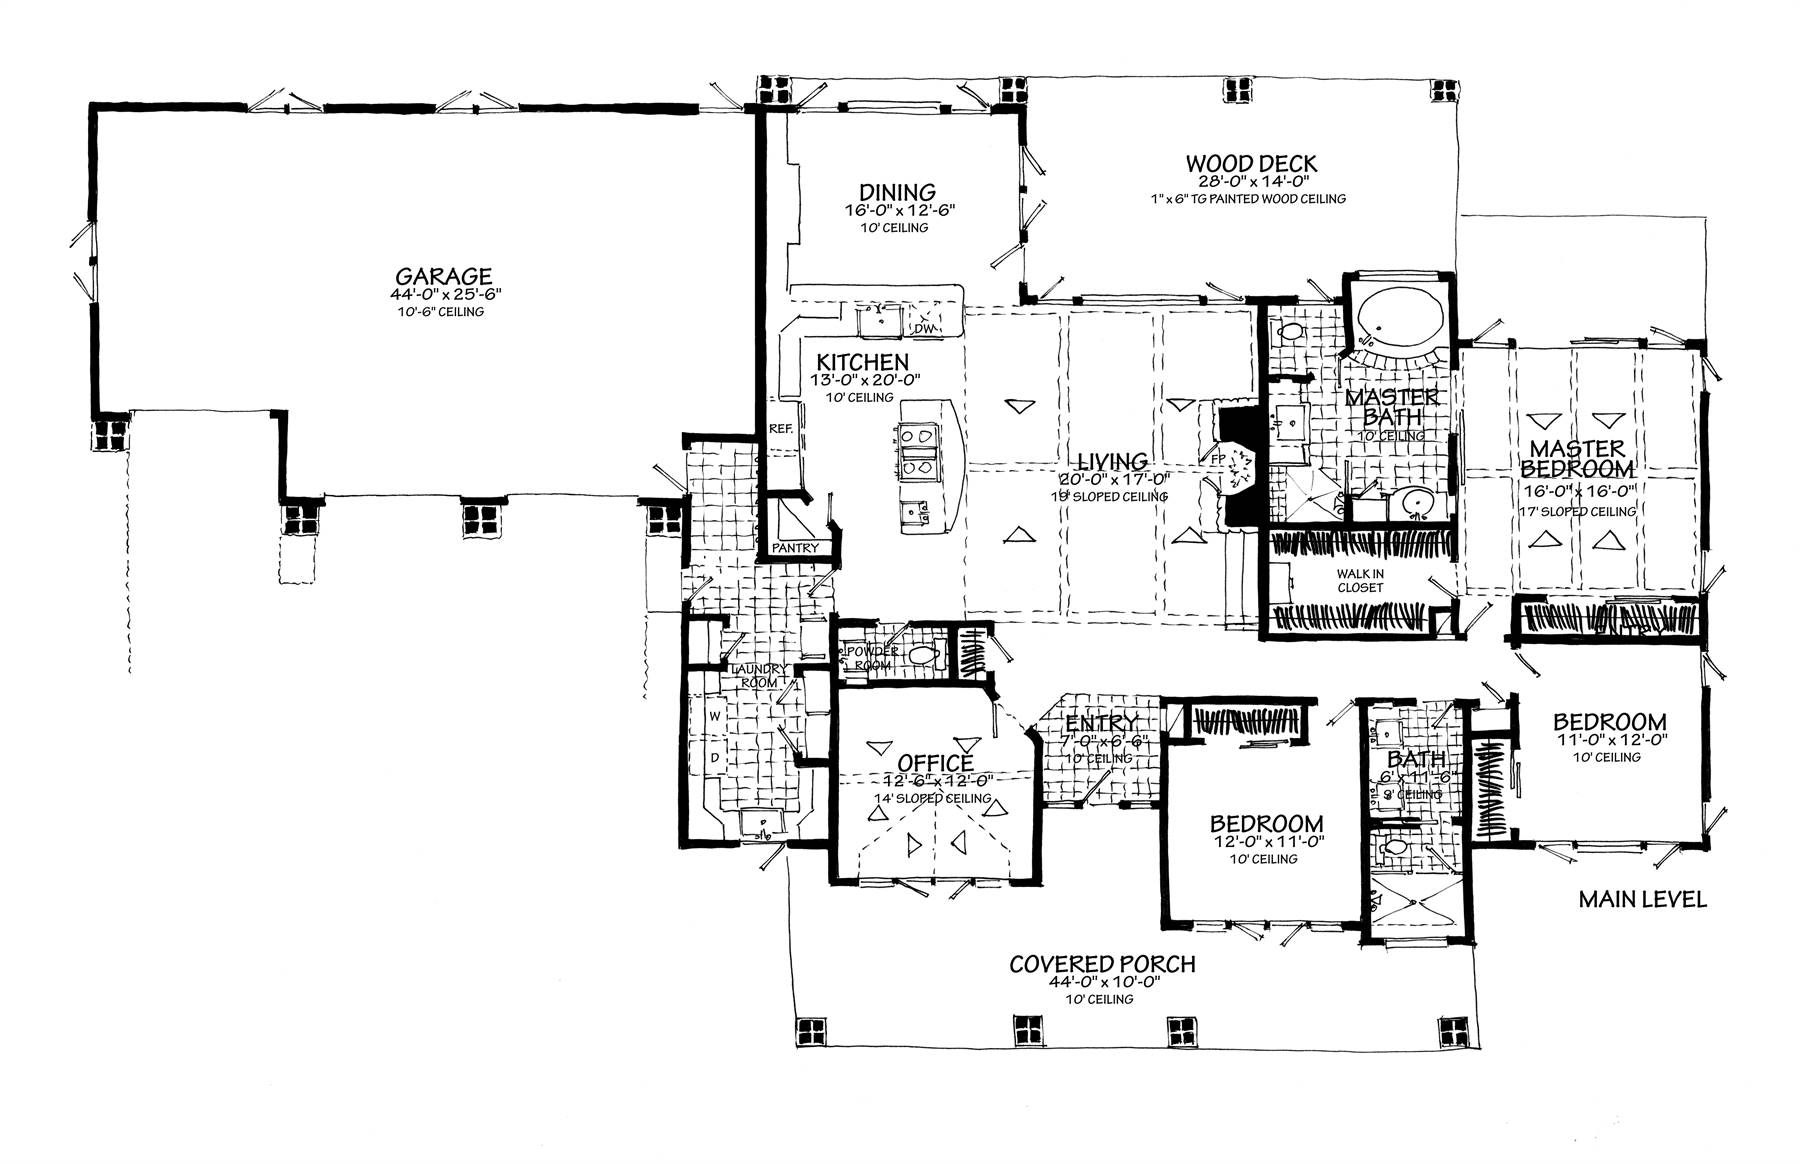 1st Floor Plan no Lower Level